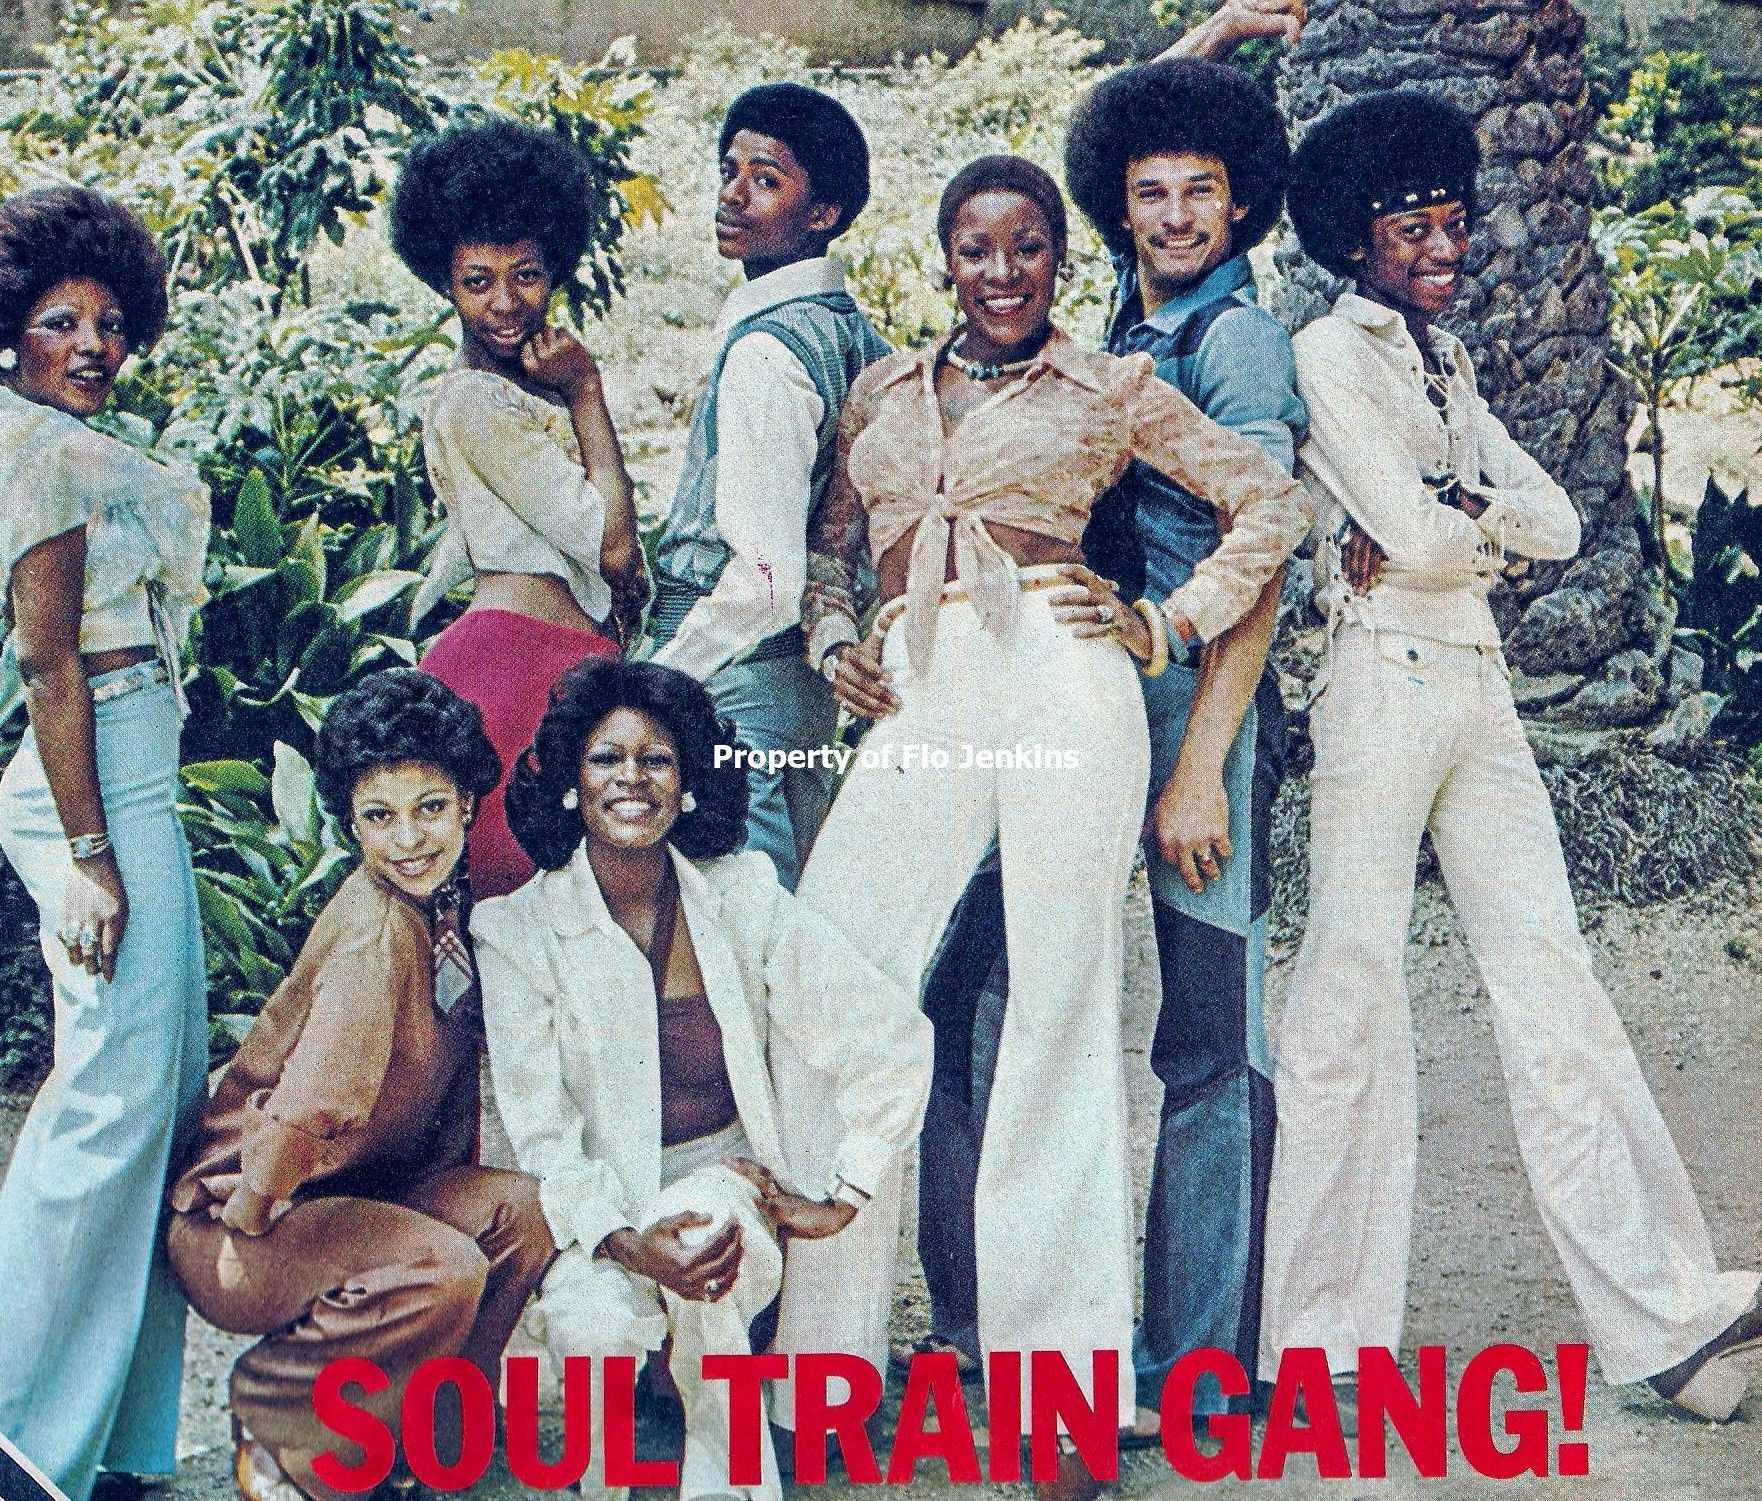 Soul Train Gang in 'Right On! Magazine'